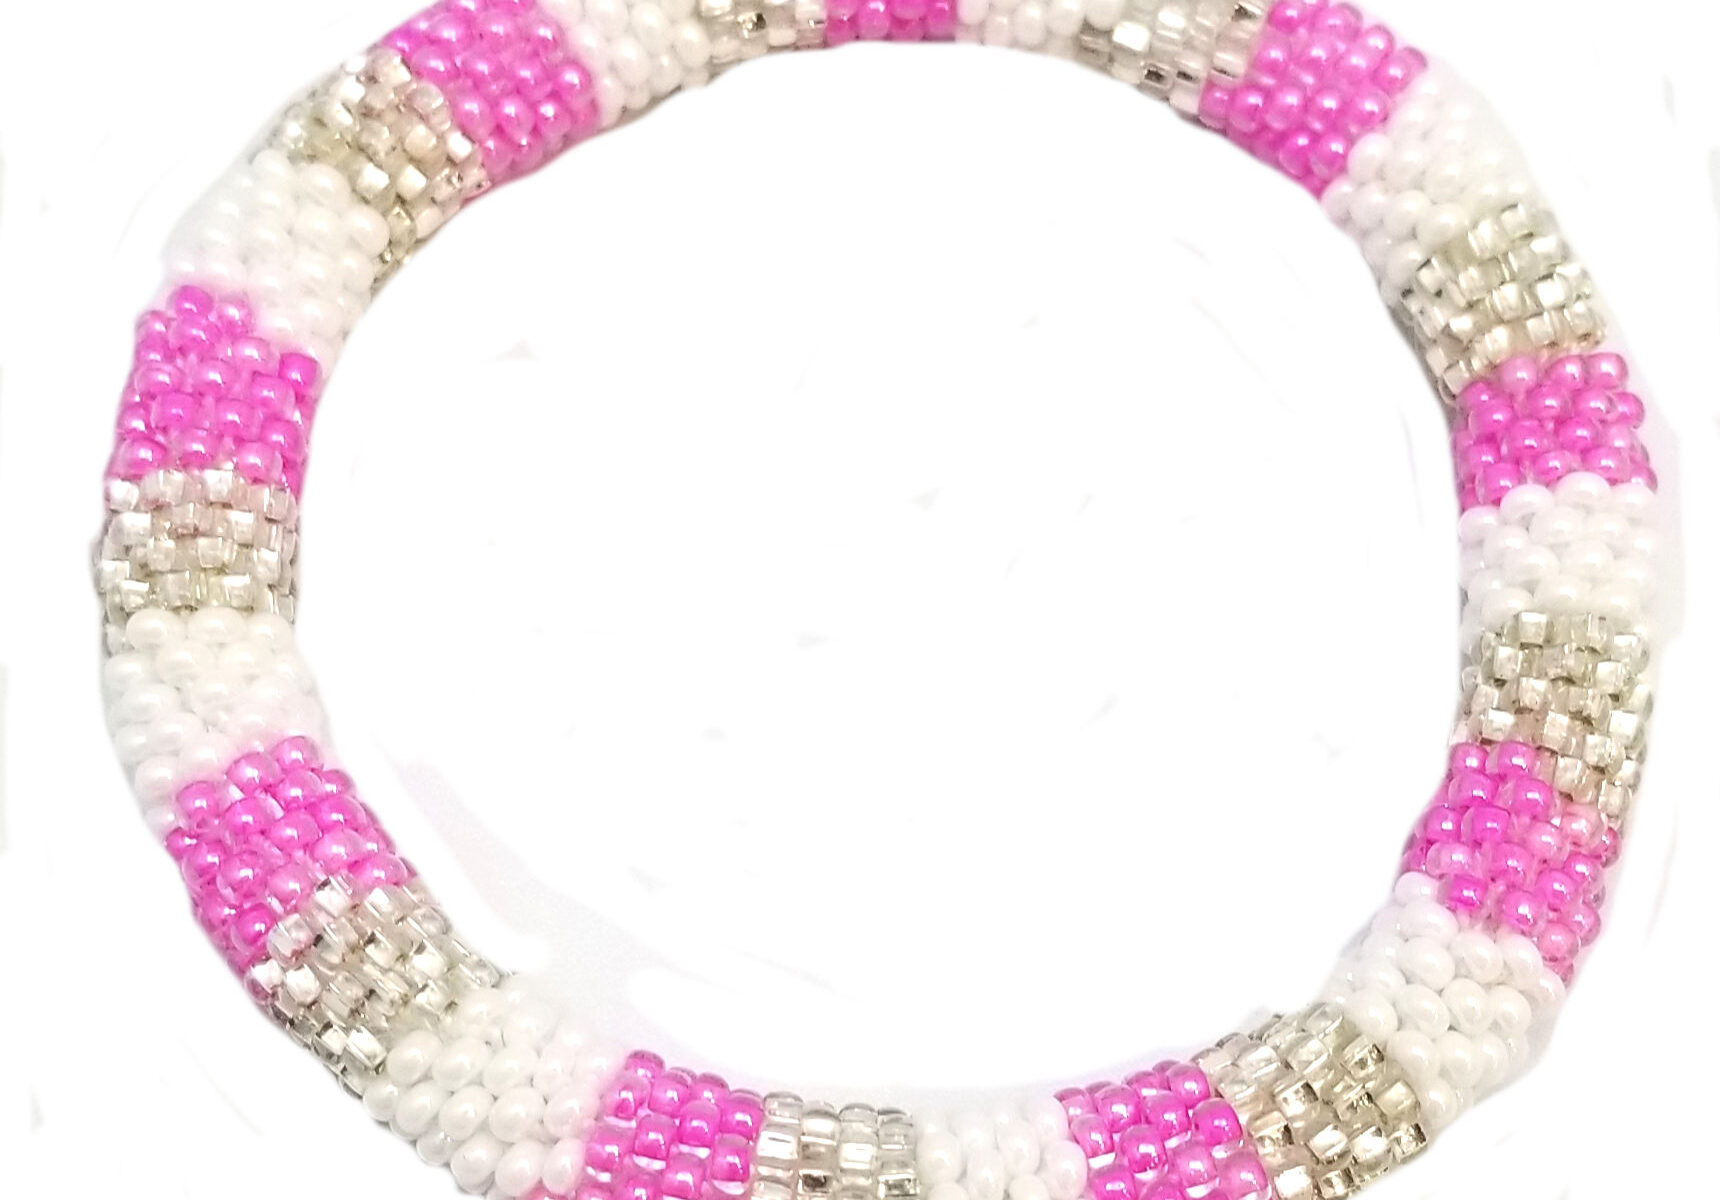 pink white and silvertone roll-on bracelet